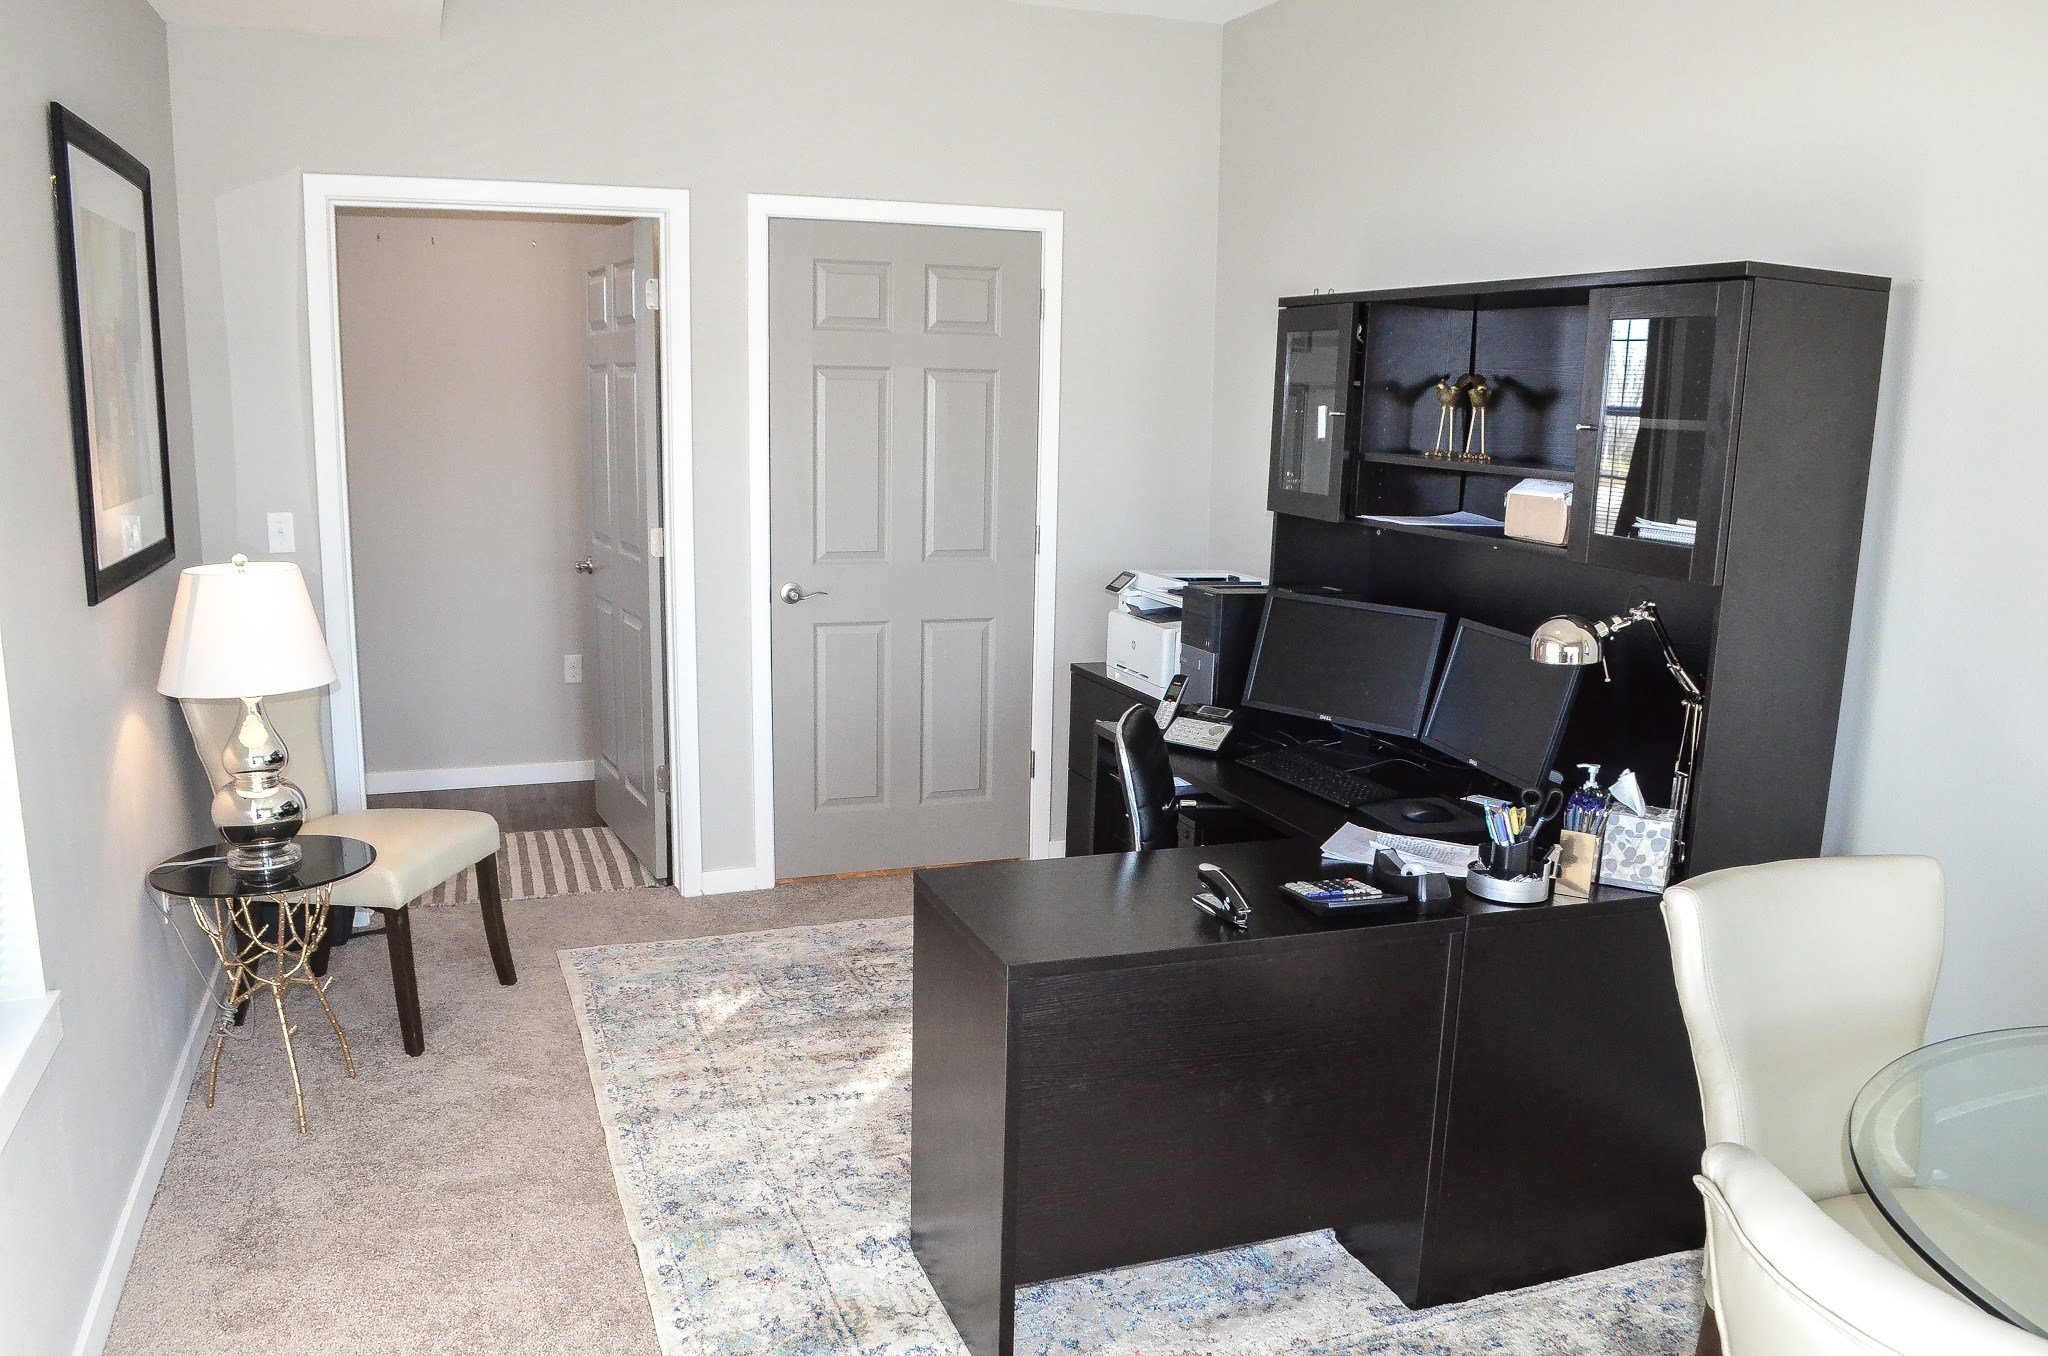 Bedroom Office at Black Feather Apartments in Castle Rock, CO